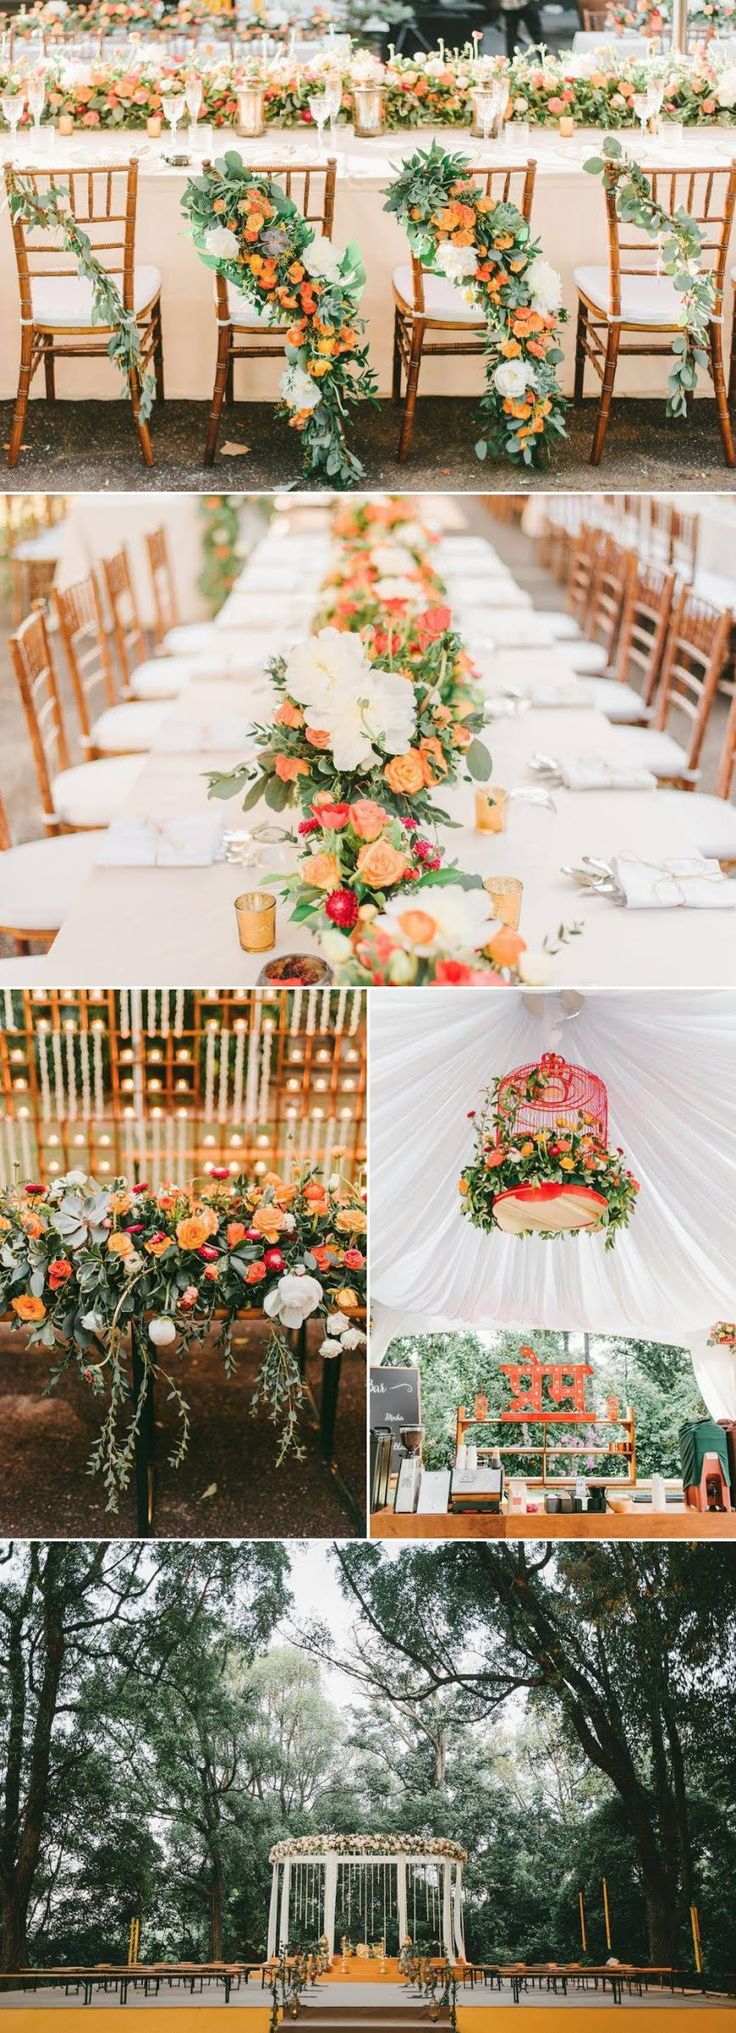 97 best decor and styling images on pinterest bali indonesia more ideas wedding themes stylist singapore junglespirit Gallery